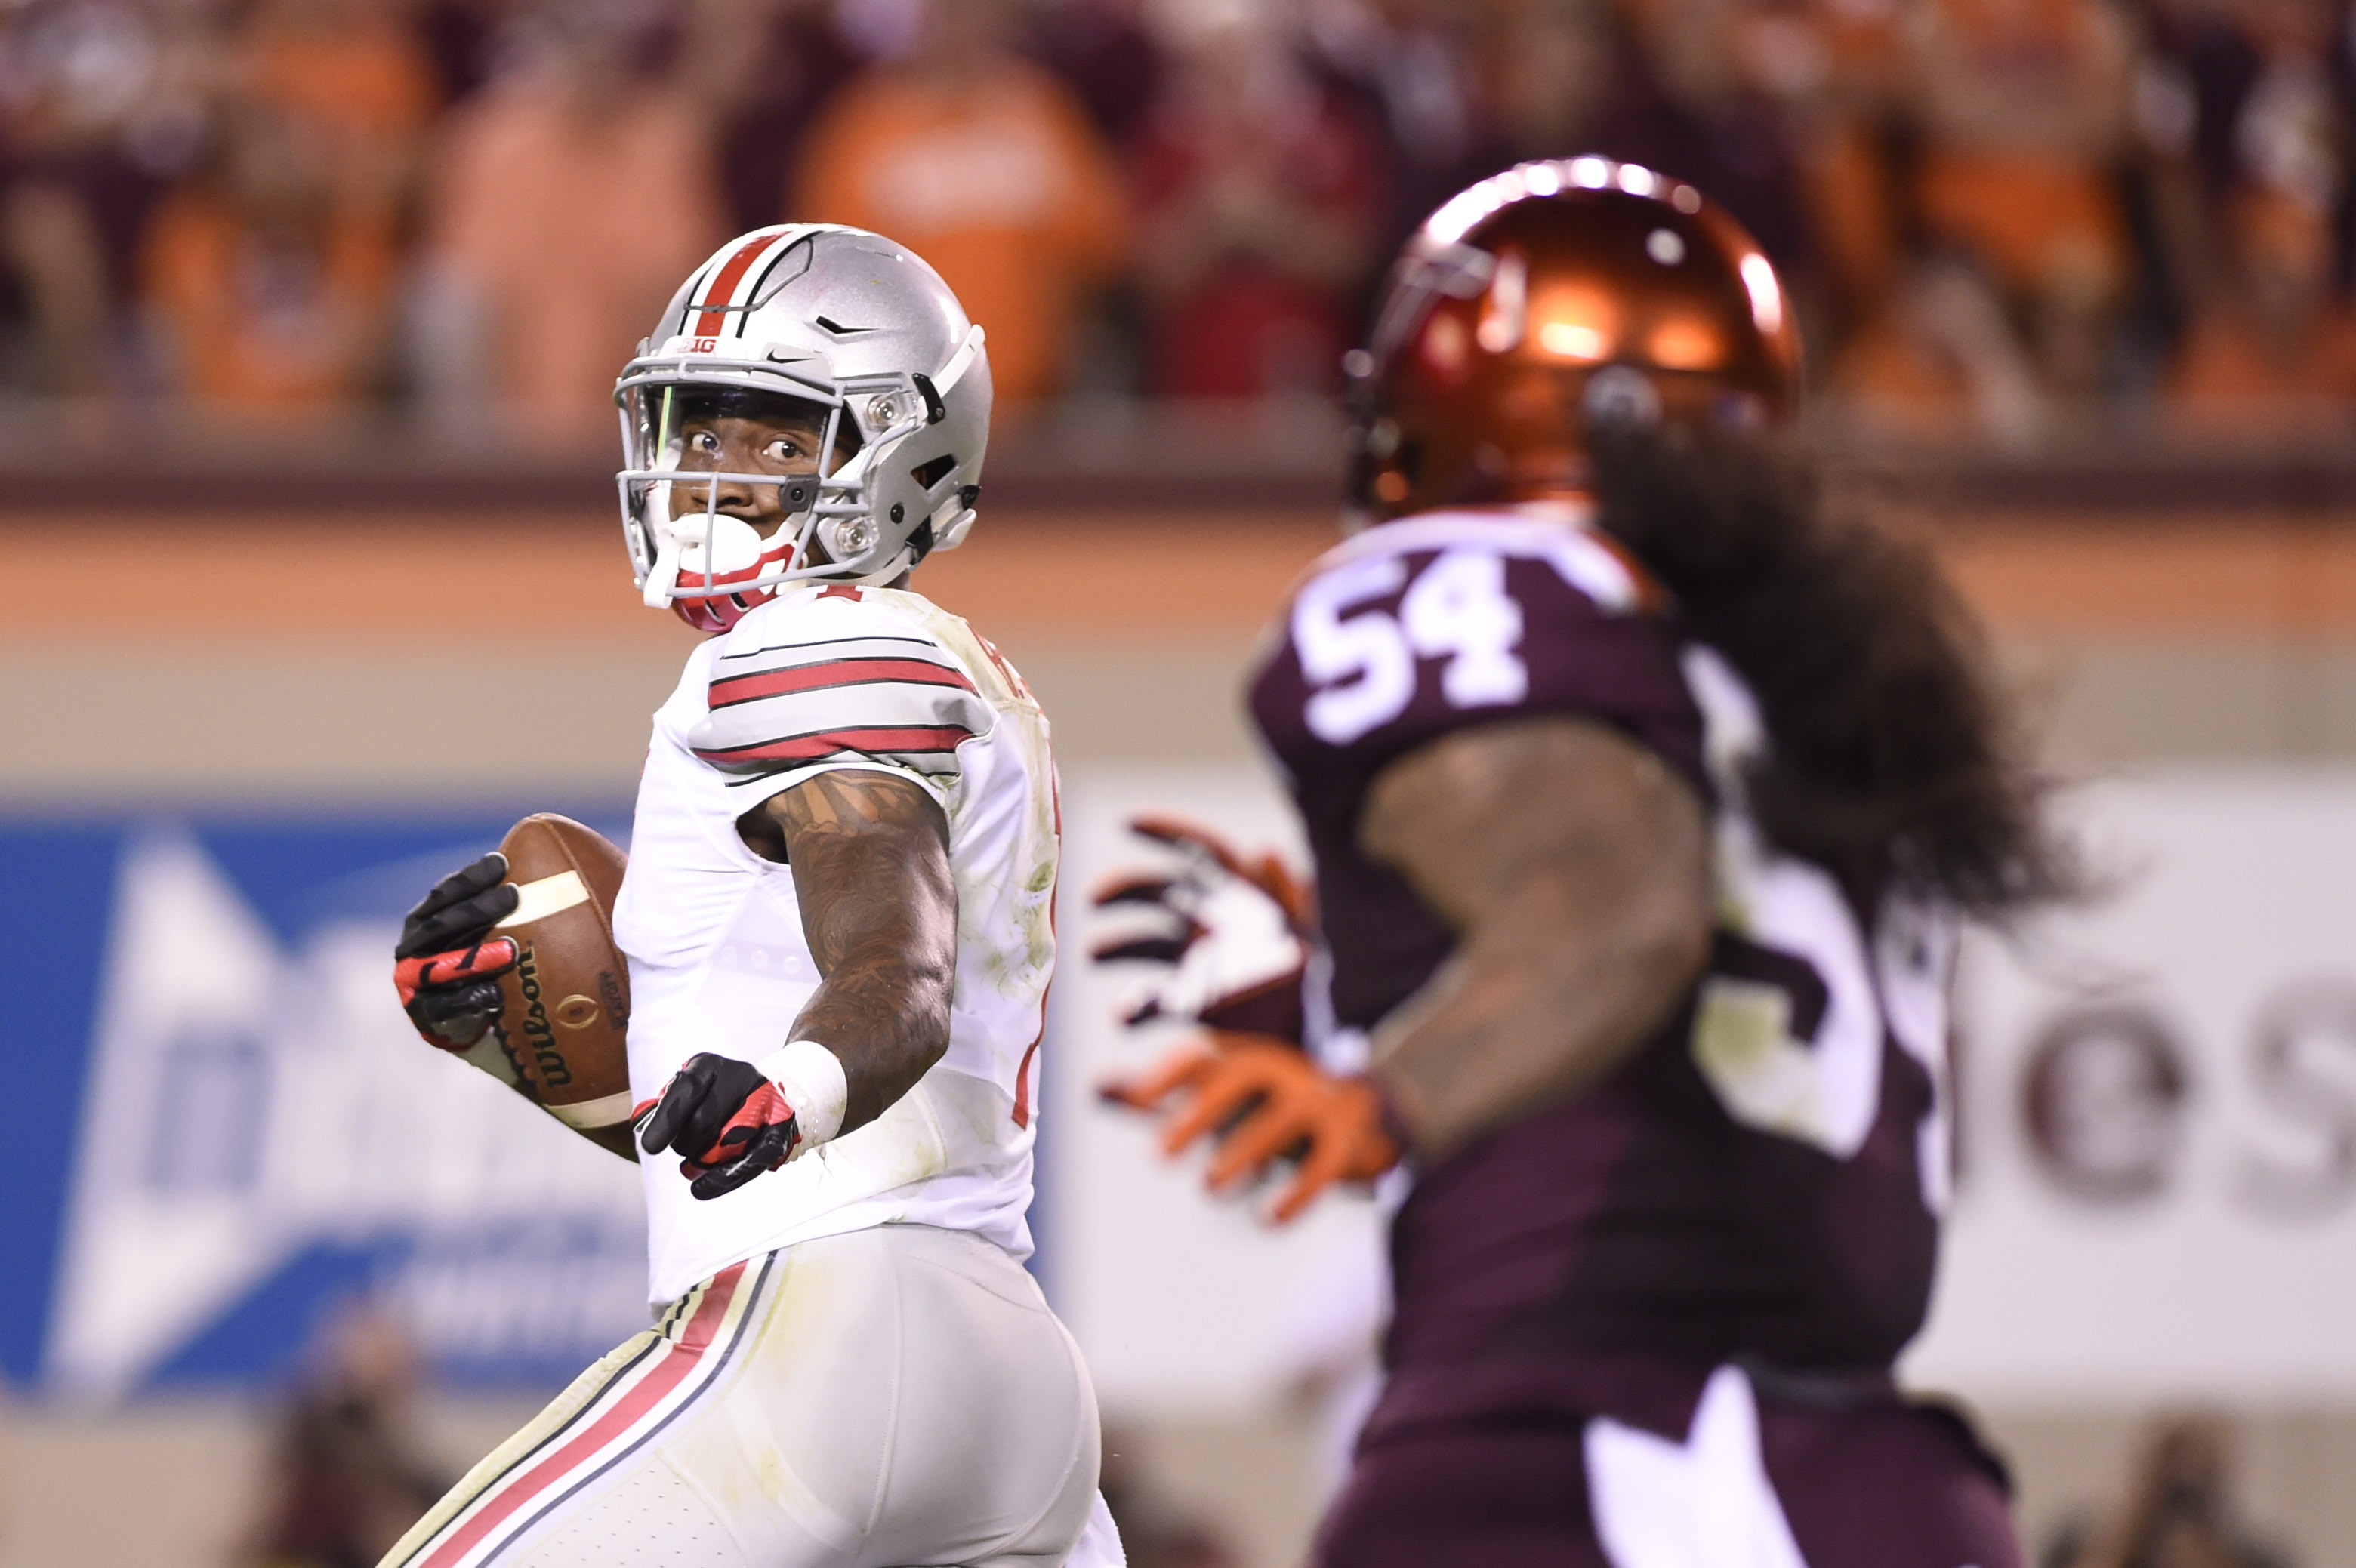 Why did Braxton Miller inflict this heartless spin move on these poor Hokies?